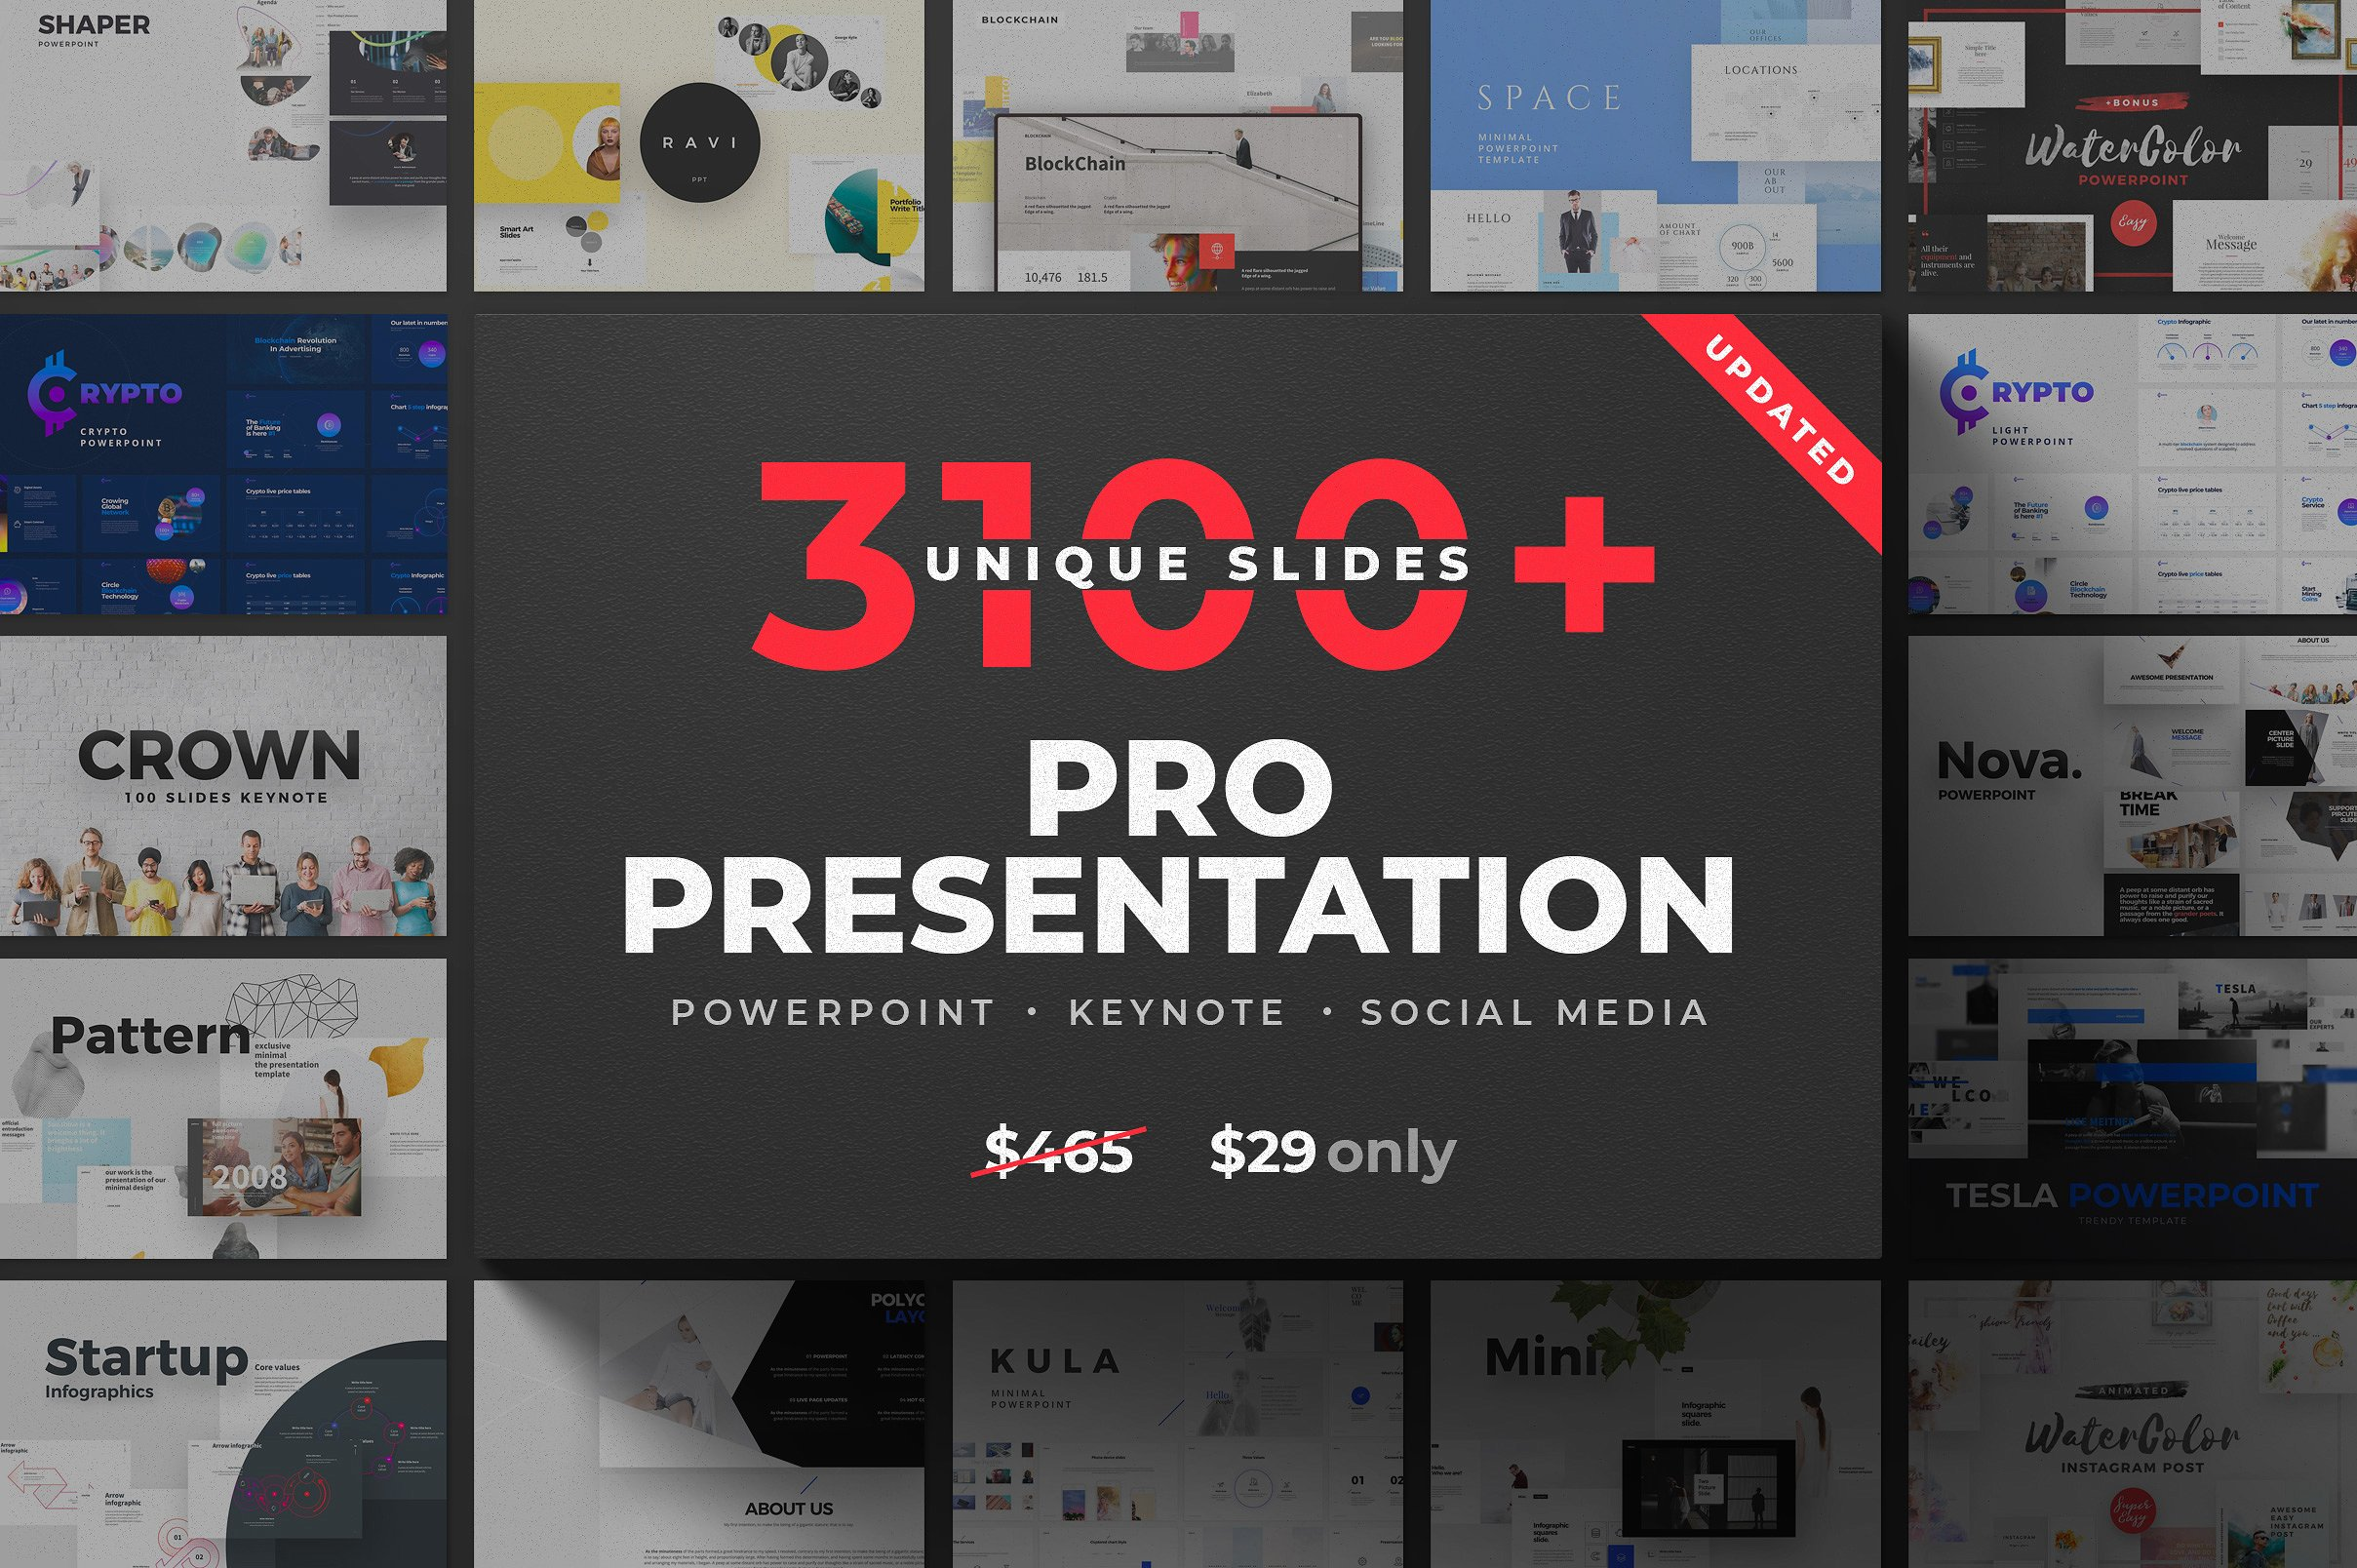 16. 31-in1 Presentation Bundle